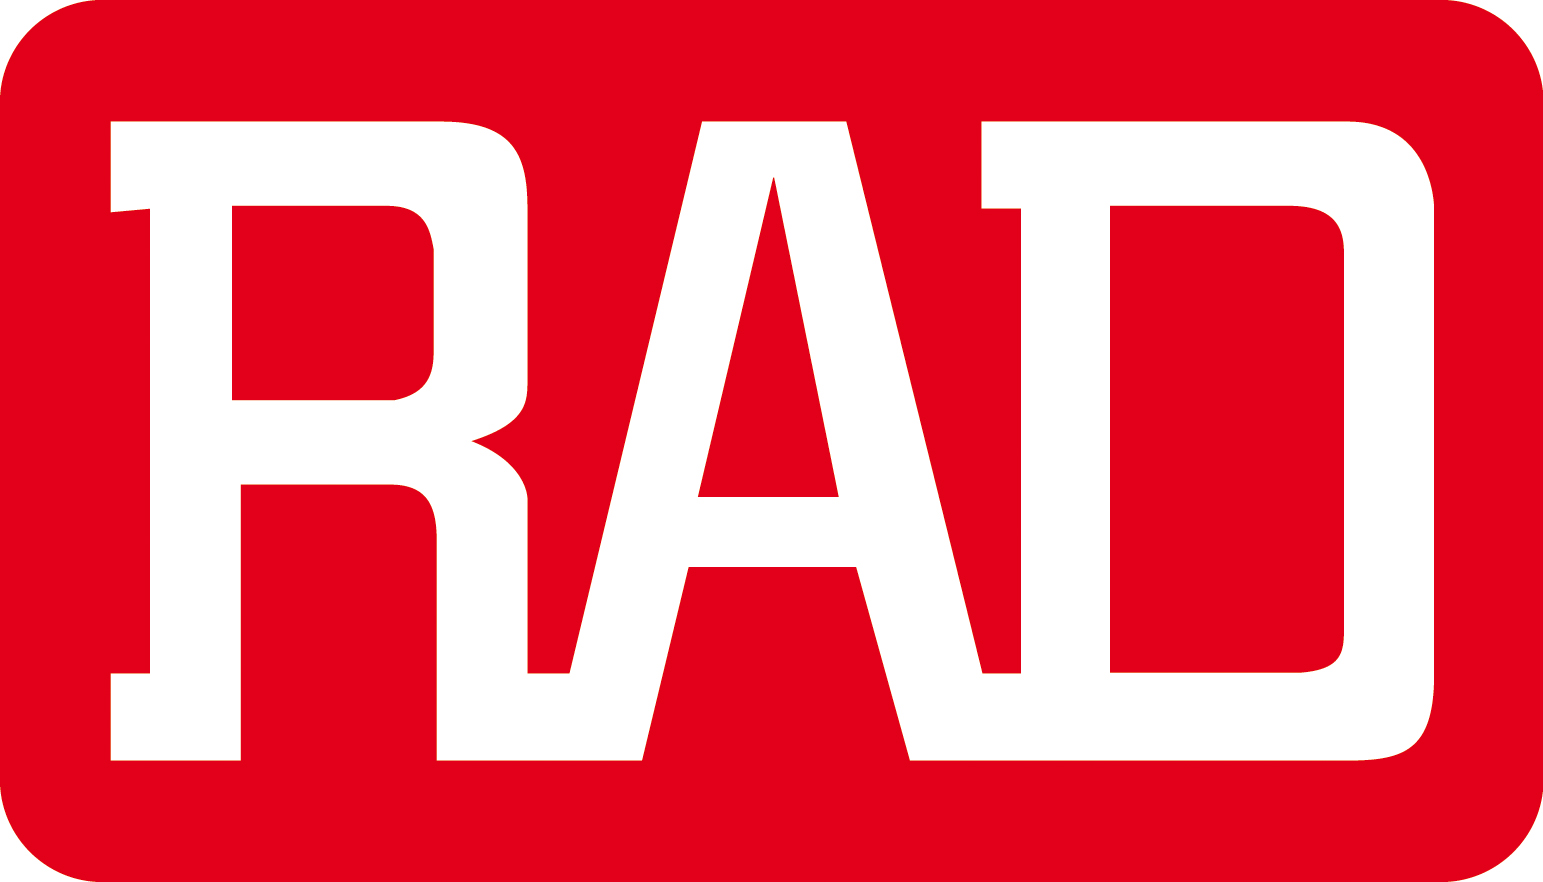 rad Synonyms for rad at thesauruscom with free online thesaurus, antonyms, and definitions find descriptive alternatives for rad.